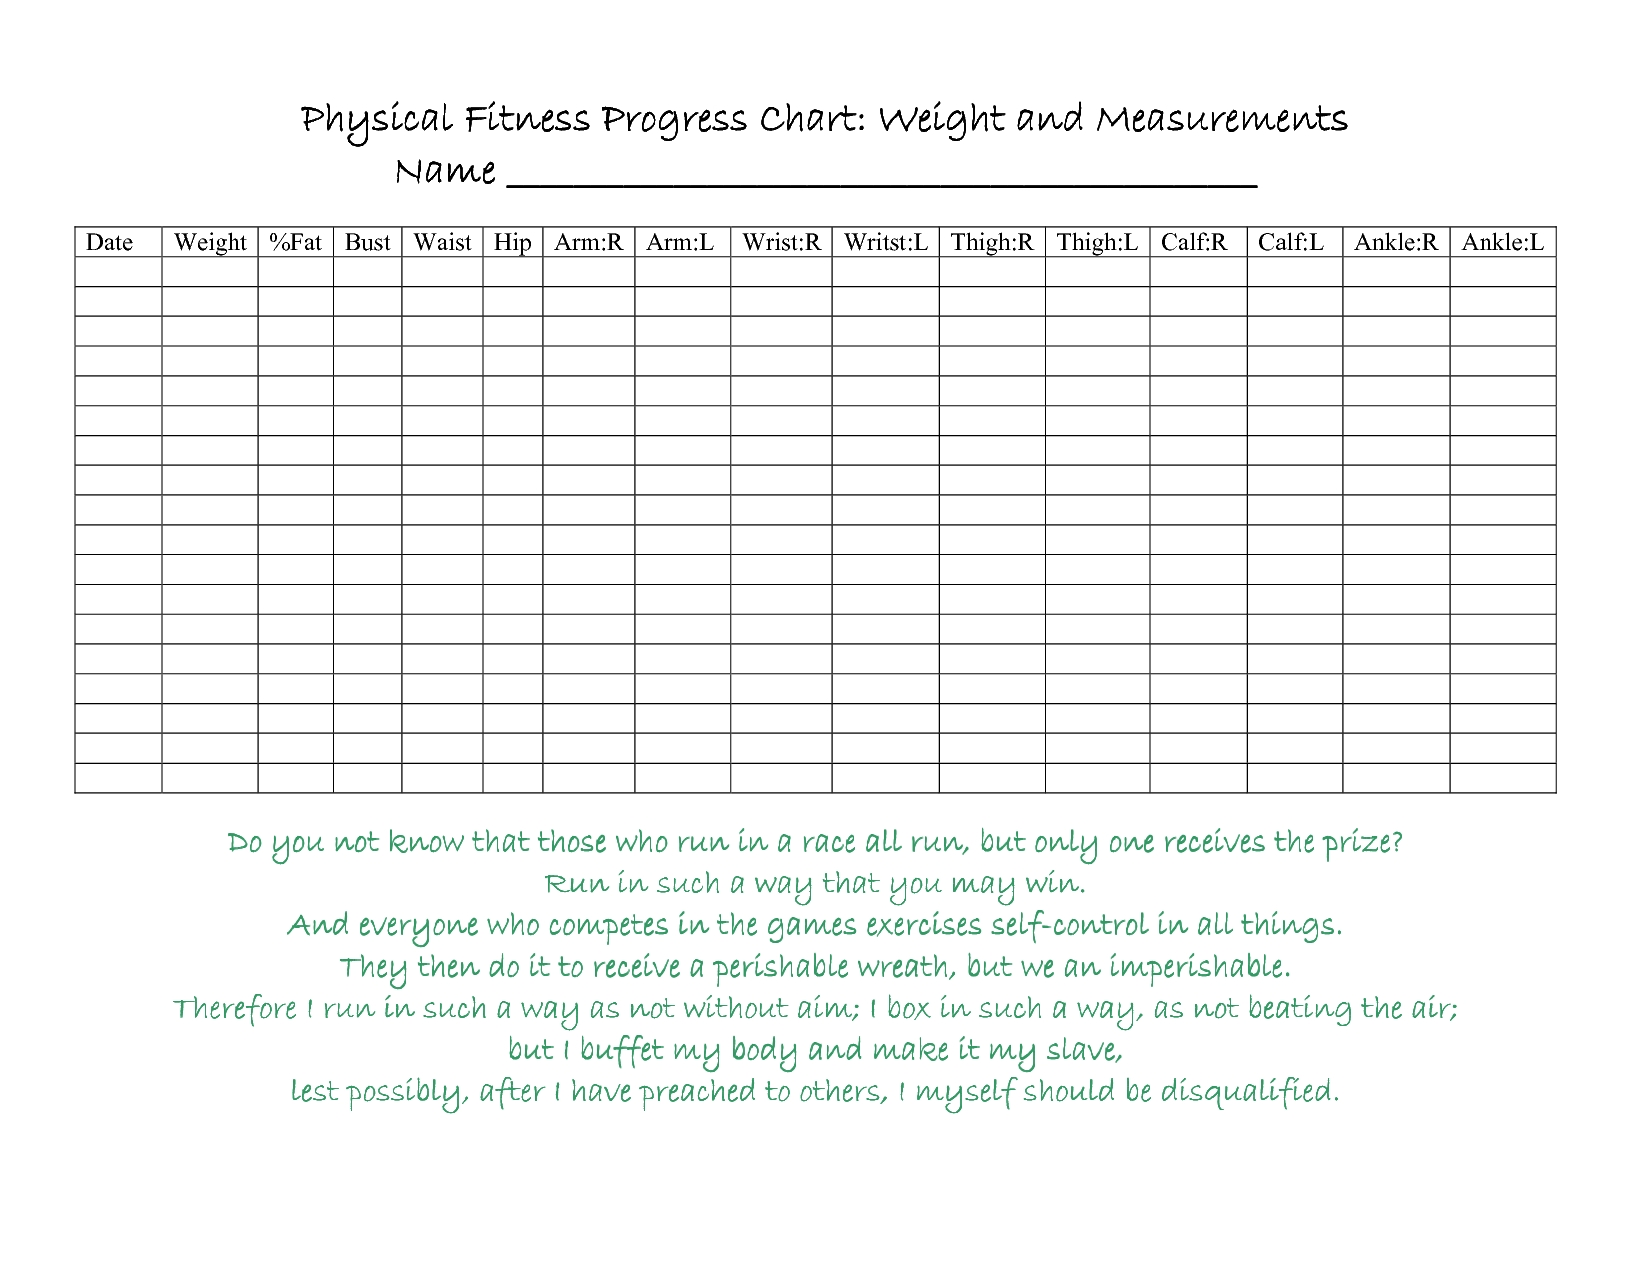 10 Gorgeous Family Life Merit Badge Project Ideas pix for personal fitness merit badge chart exercise weight loss 2020